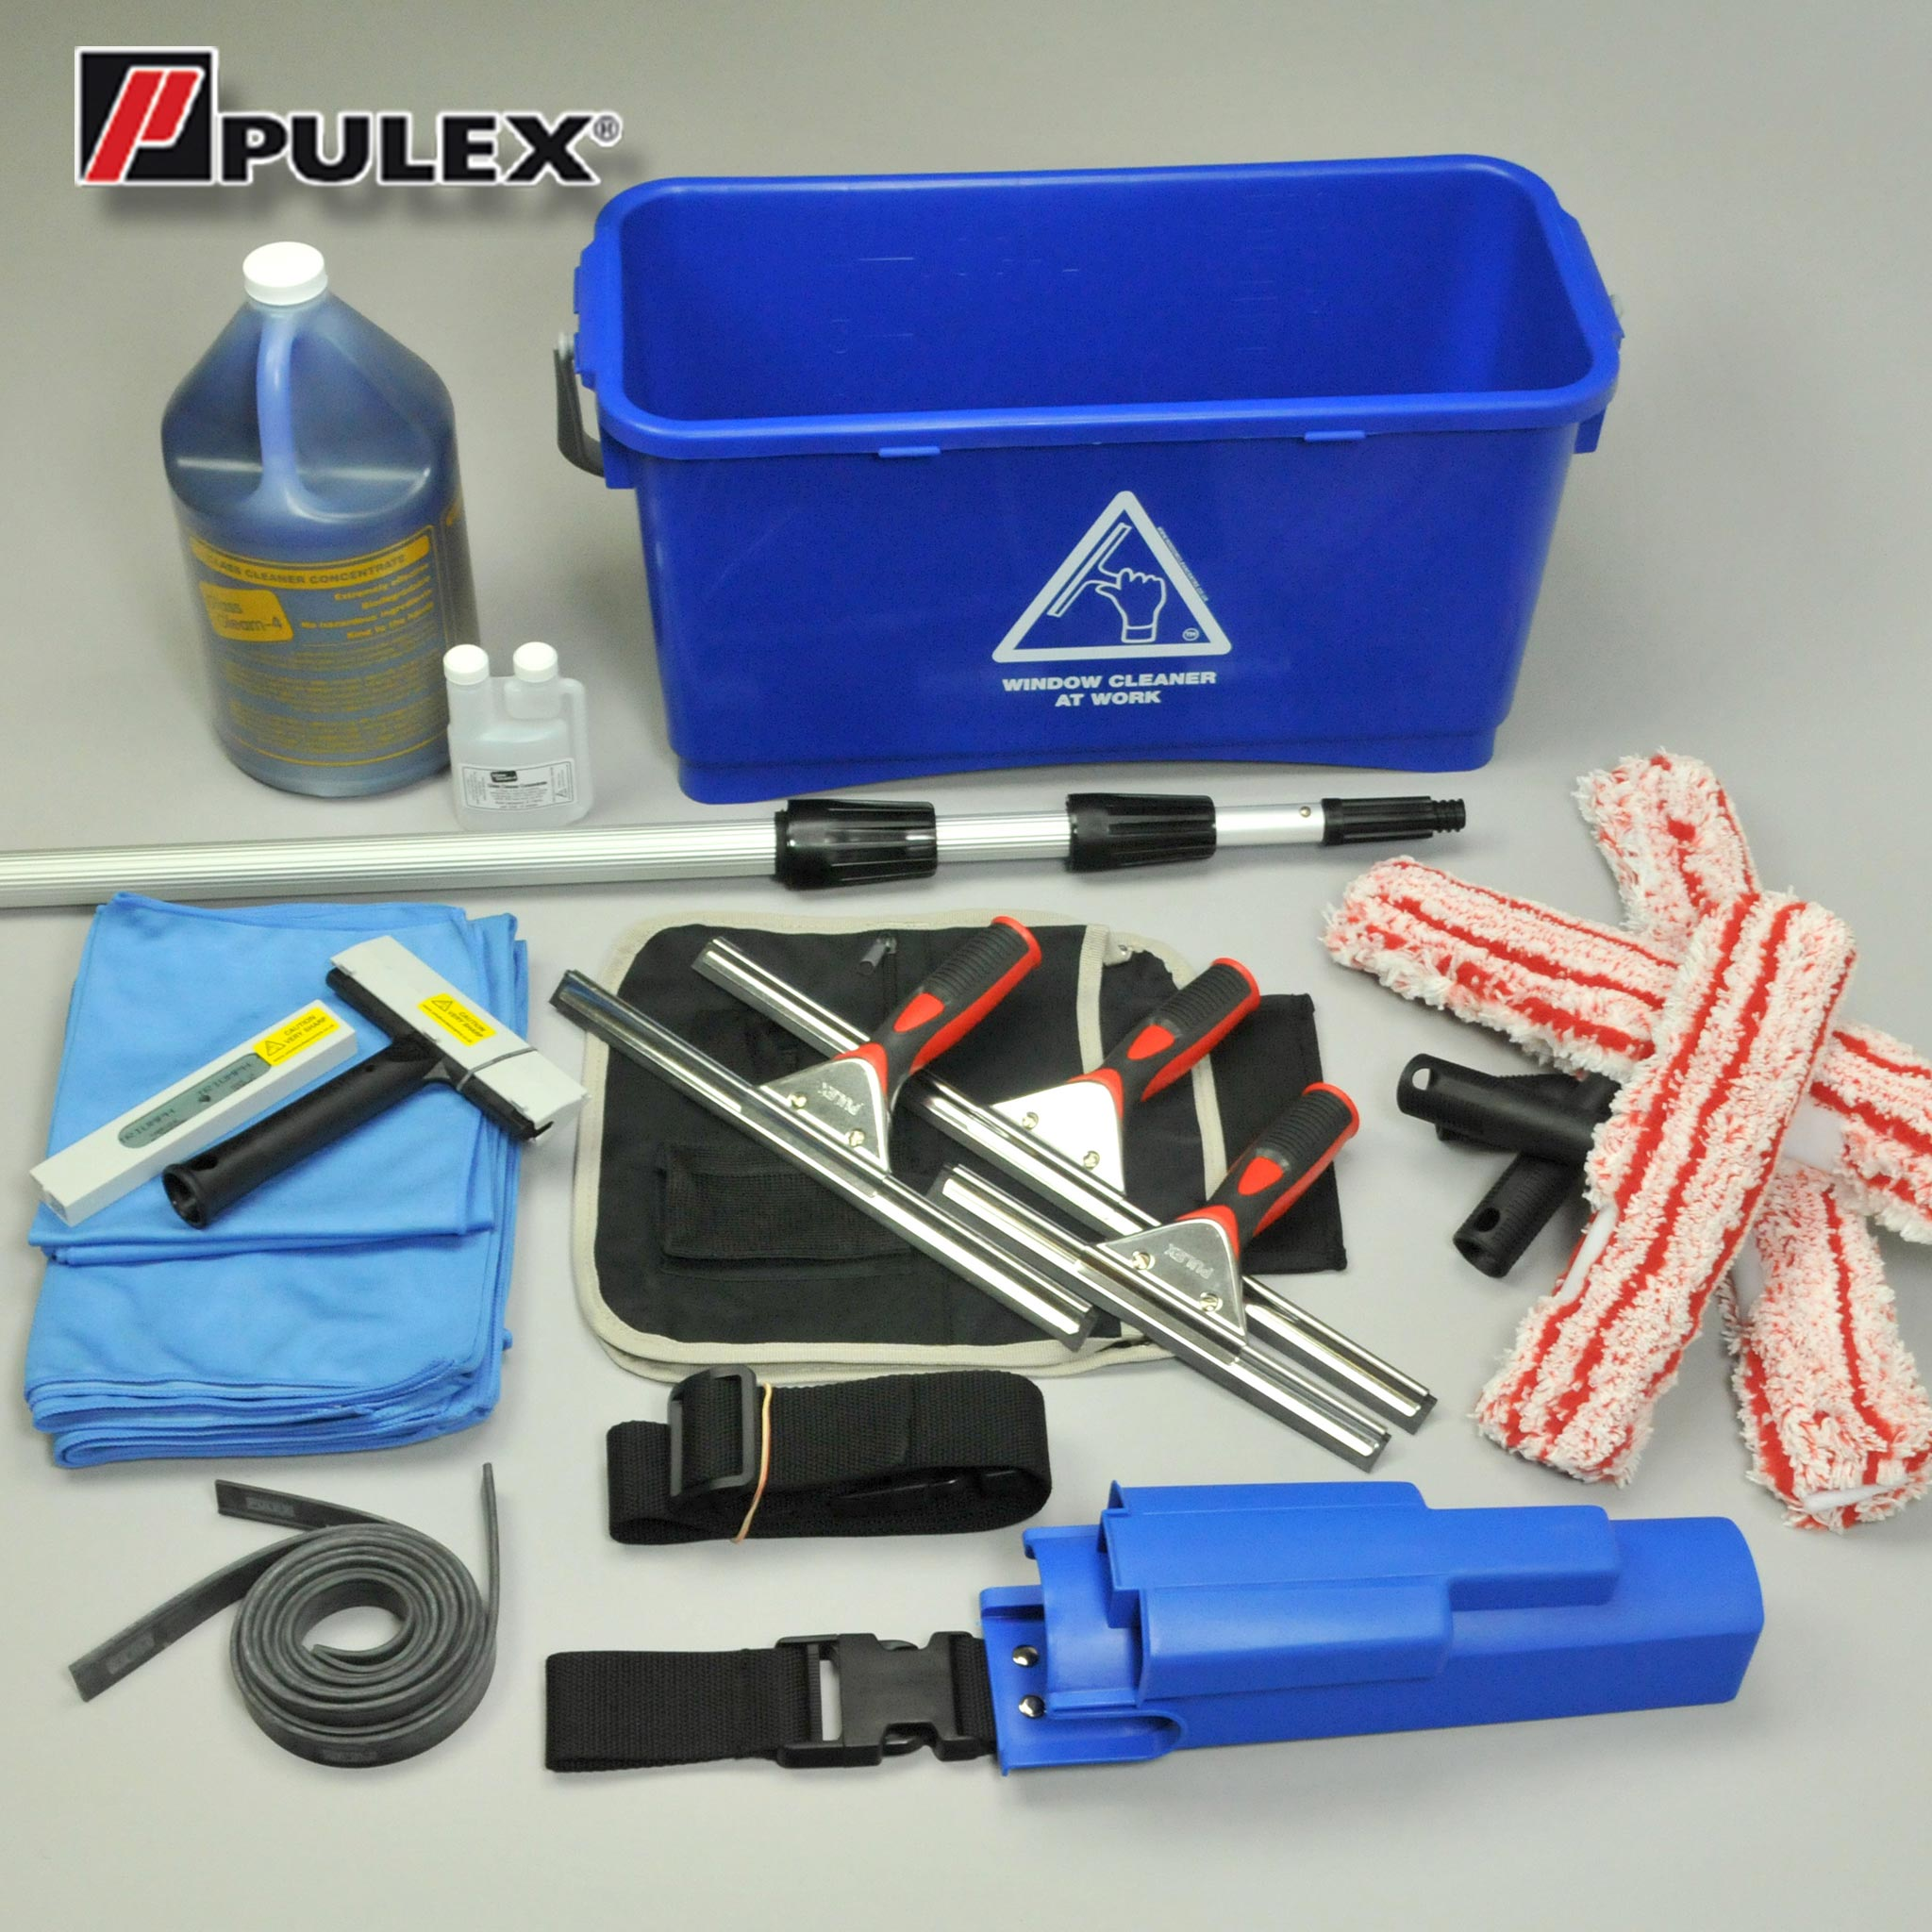 Pulex Window Cleaning Kit - Pro Plus